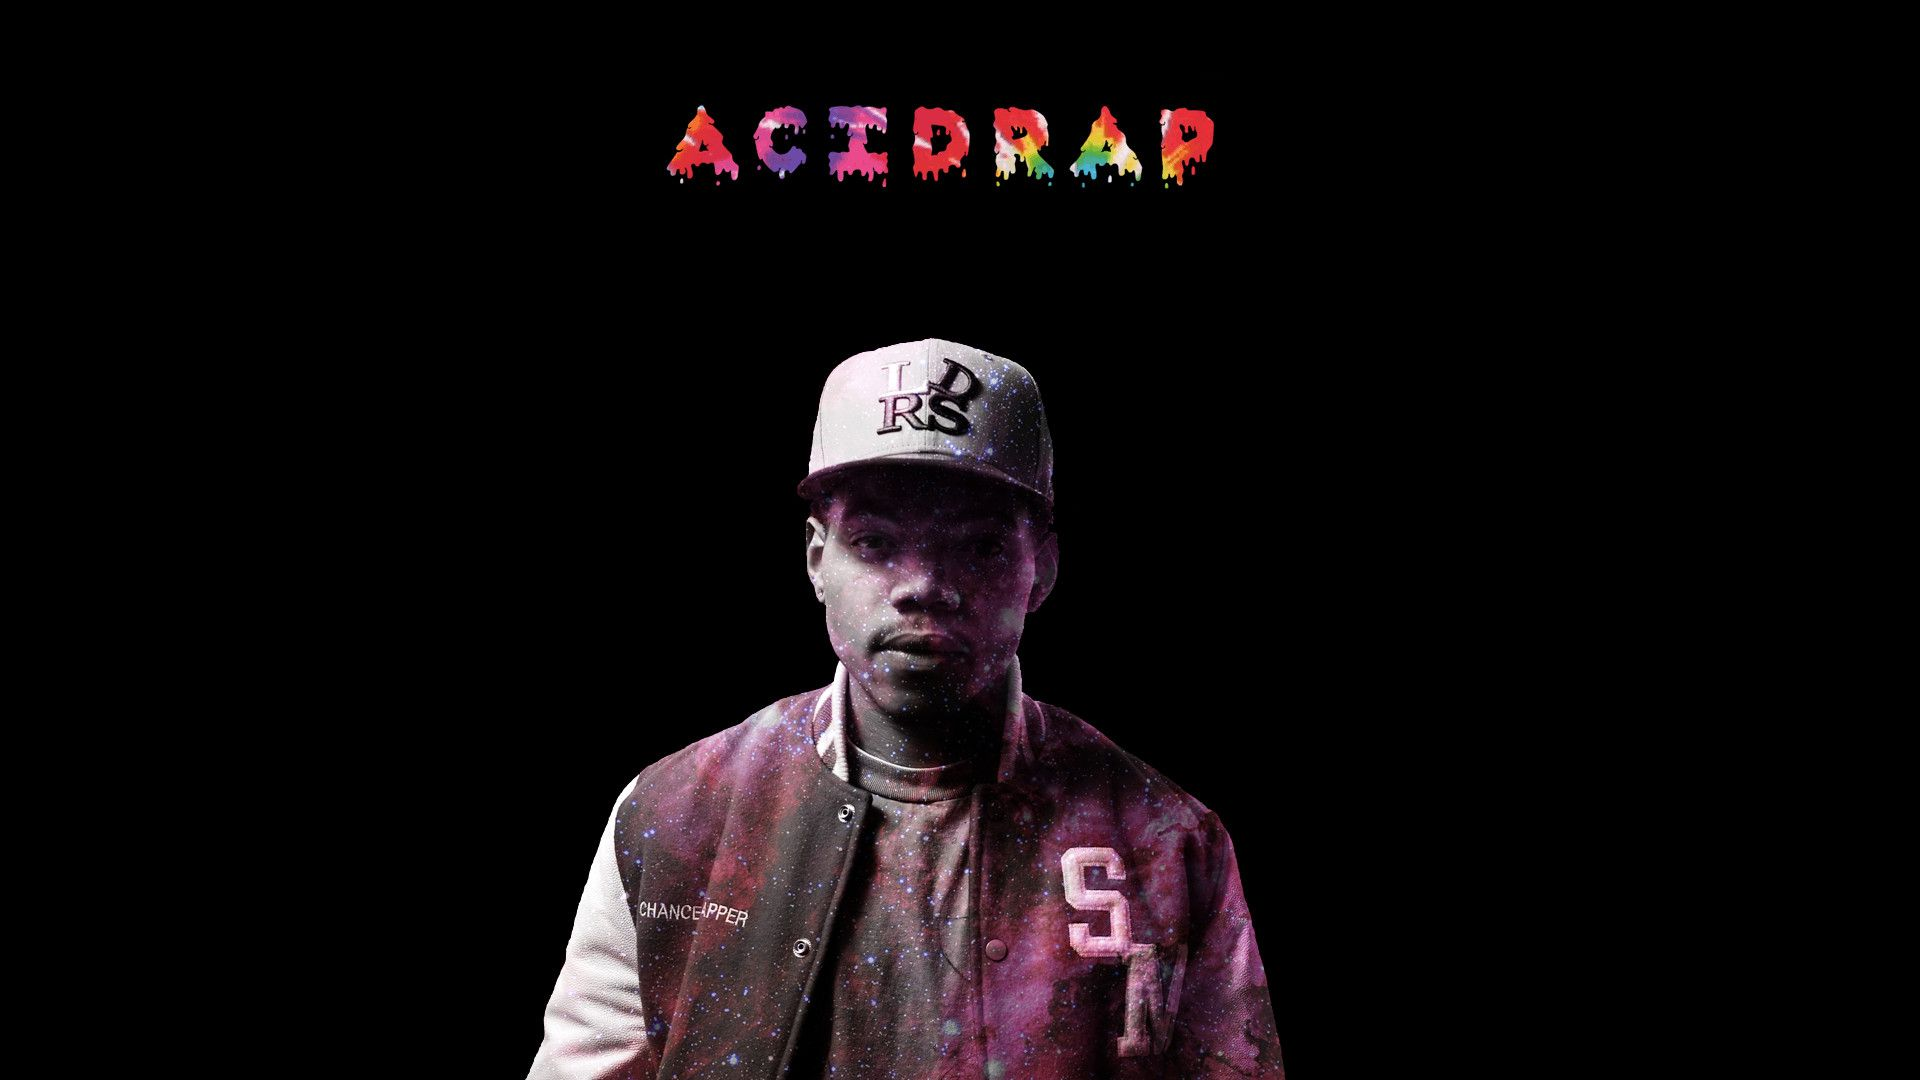 1920x1080 77+ Acid Rap Wallpapers on WallpaperPlay